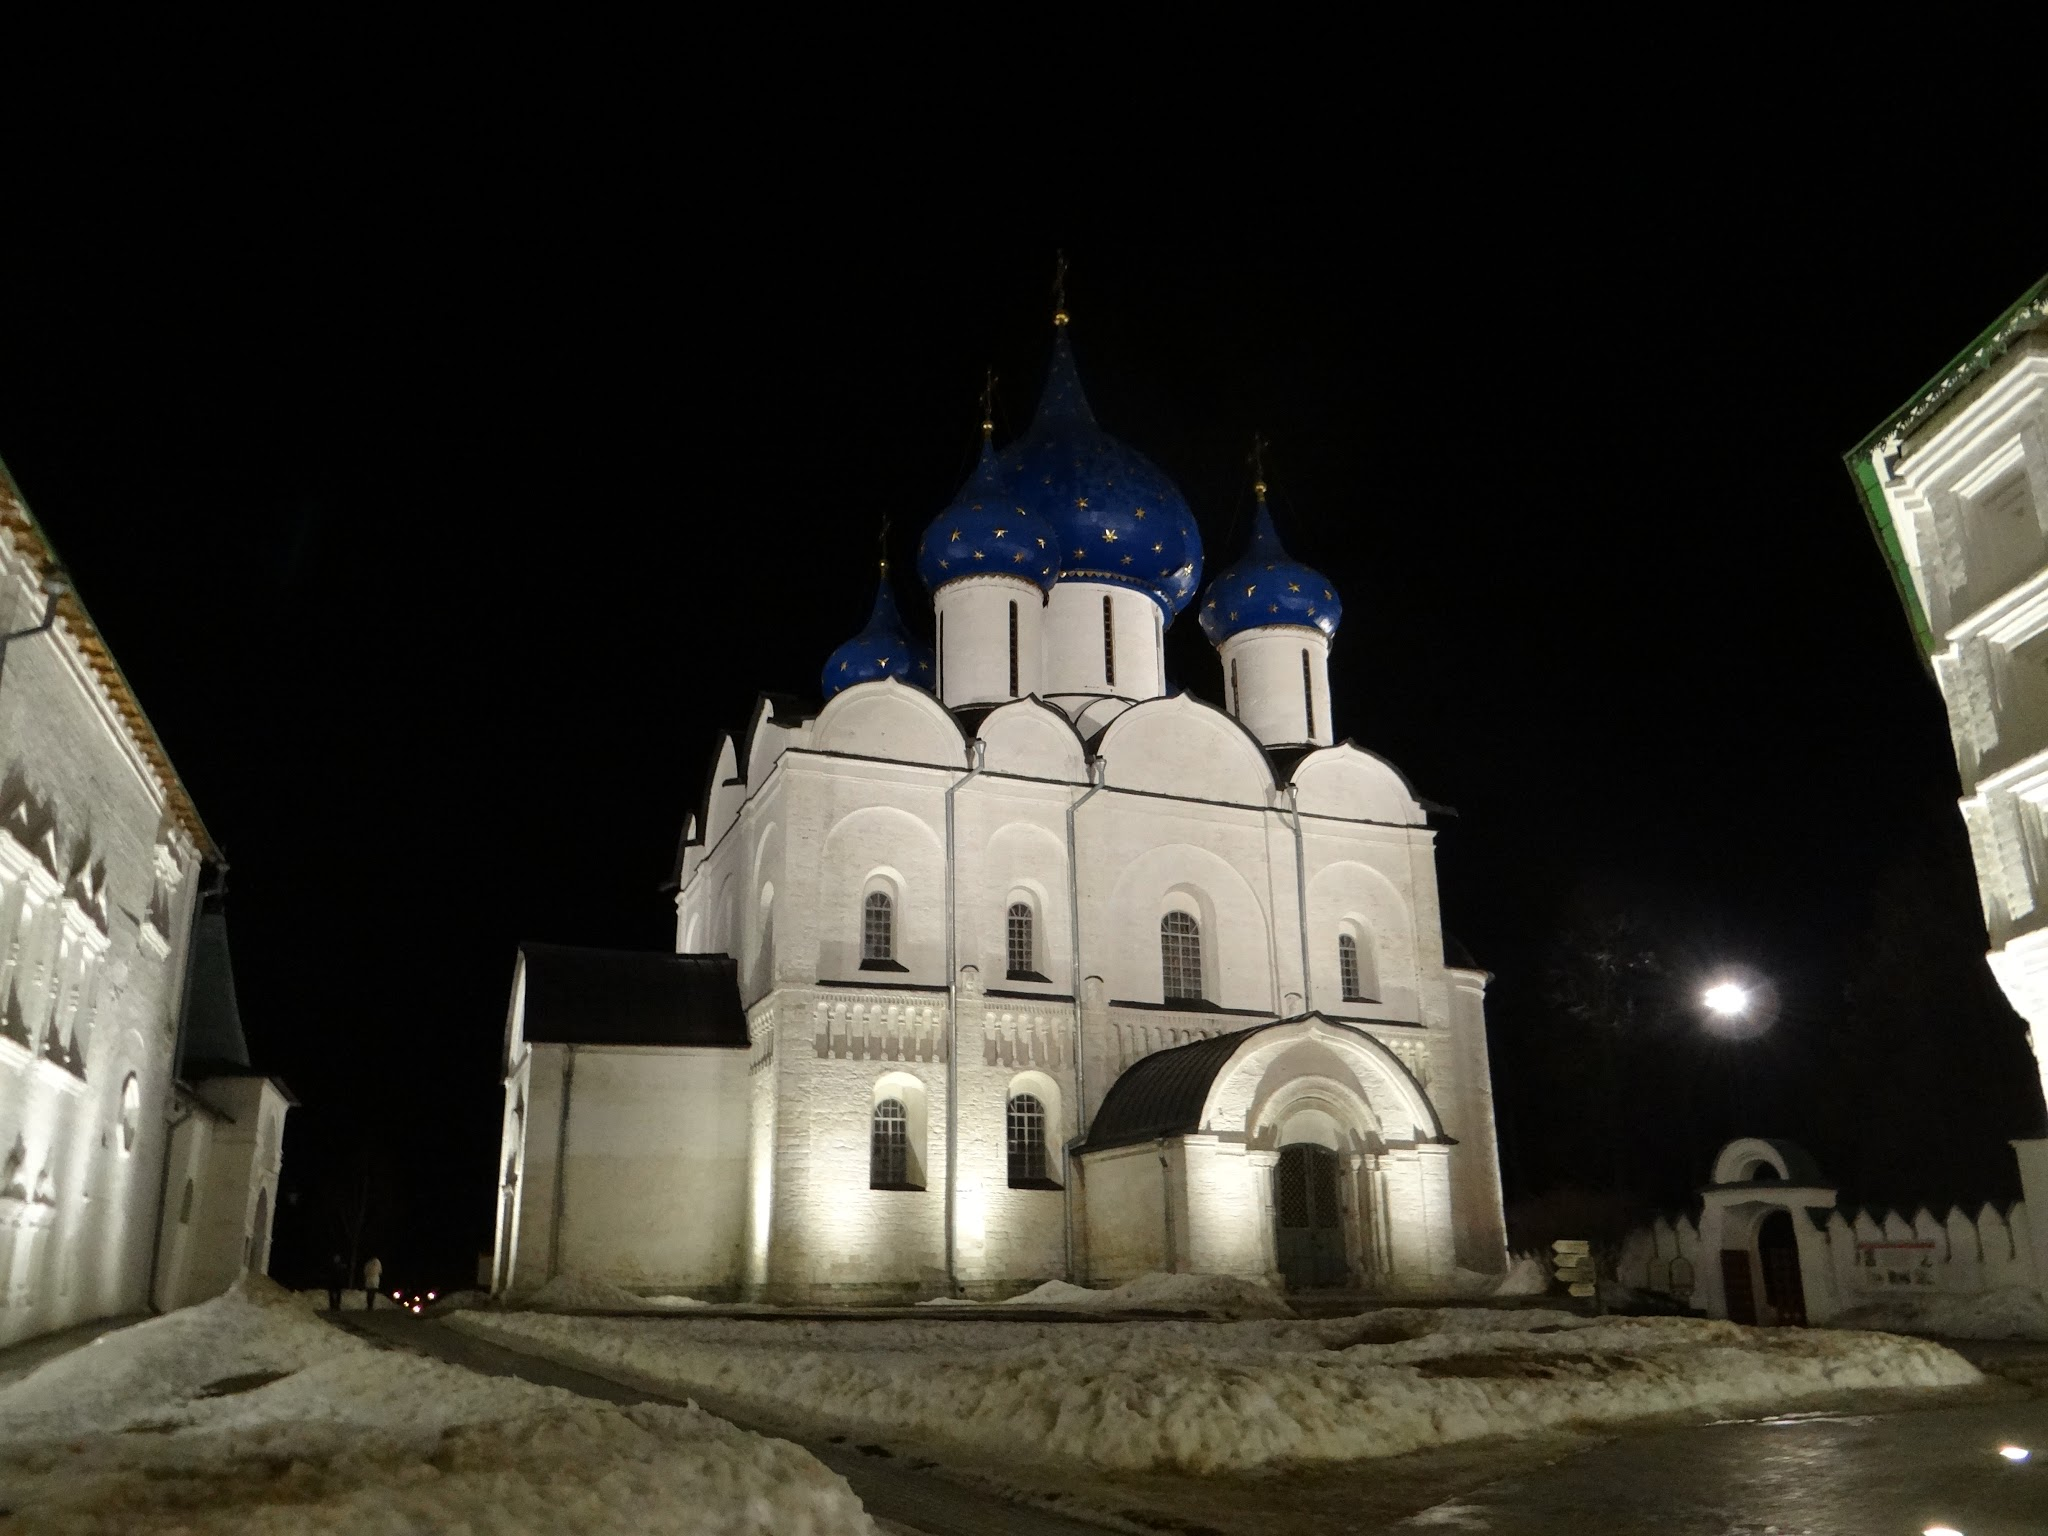 A night view of Suzdal's Kremlin internal courtyard